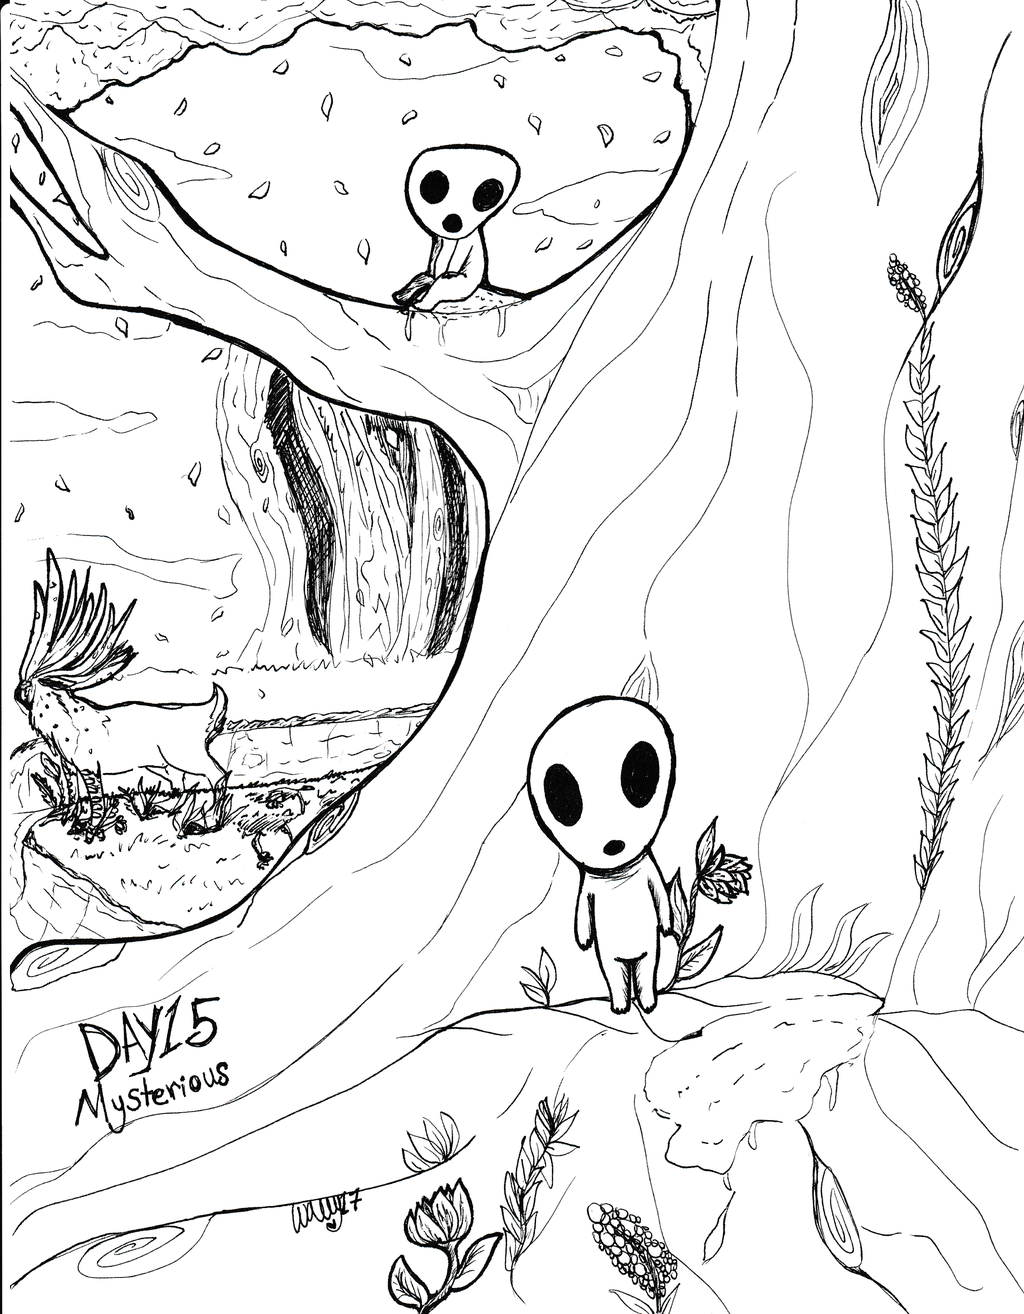 Inktober17 Day 15: Mysterious